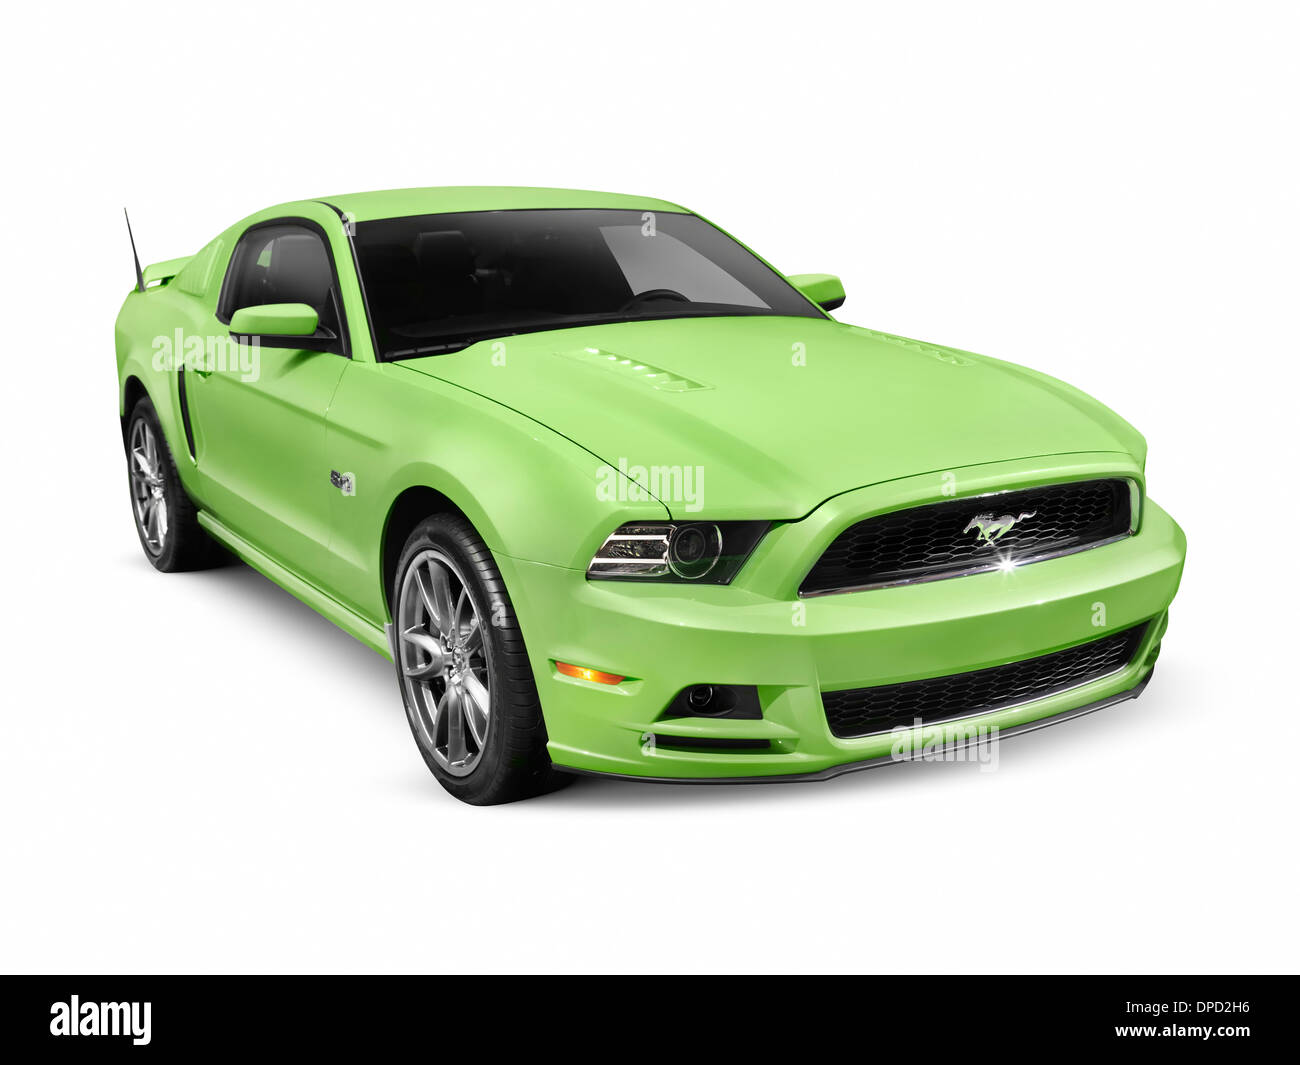 green 2013 ford mustang gt 50 sports car isolated on white background with clipping path - Ford Mustang 2013 White